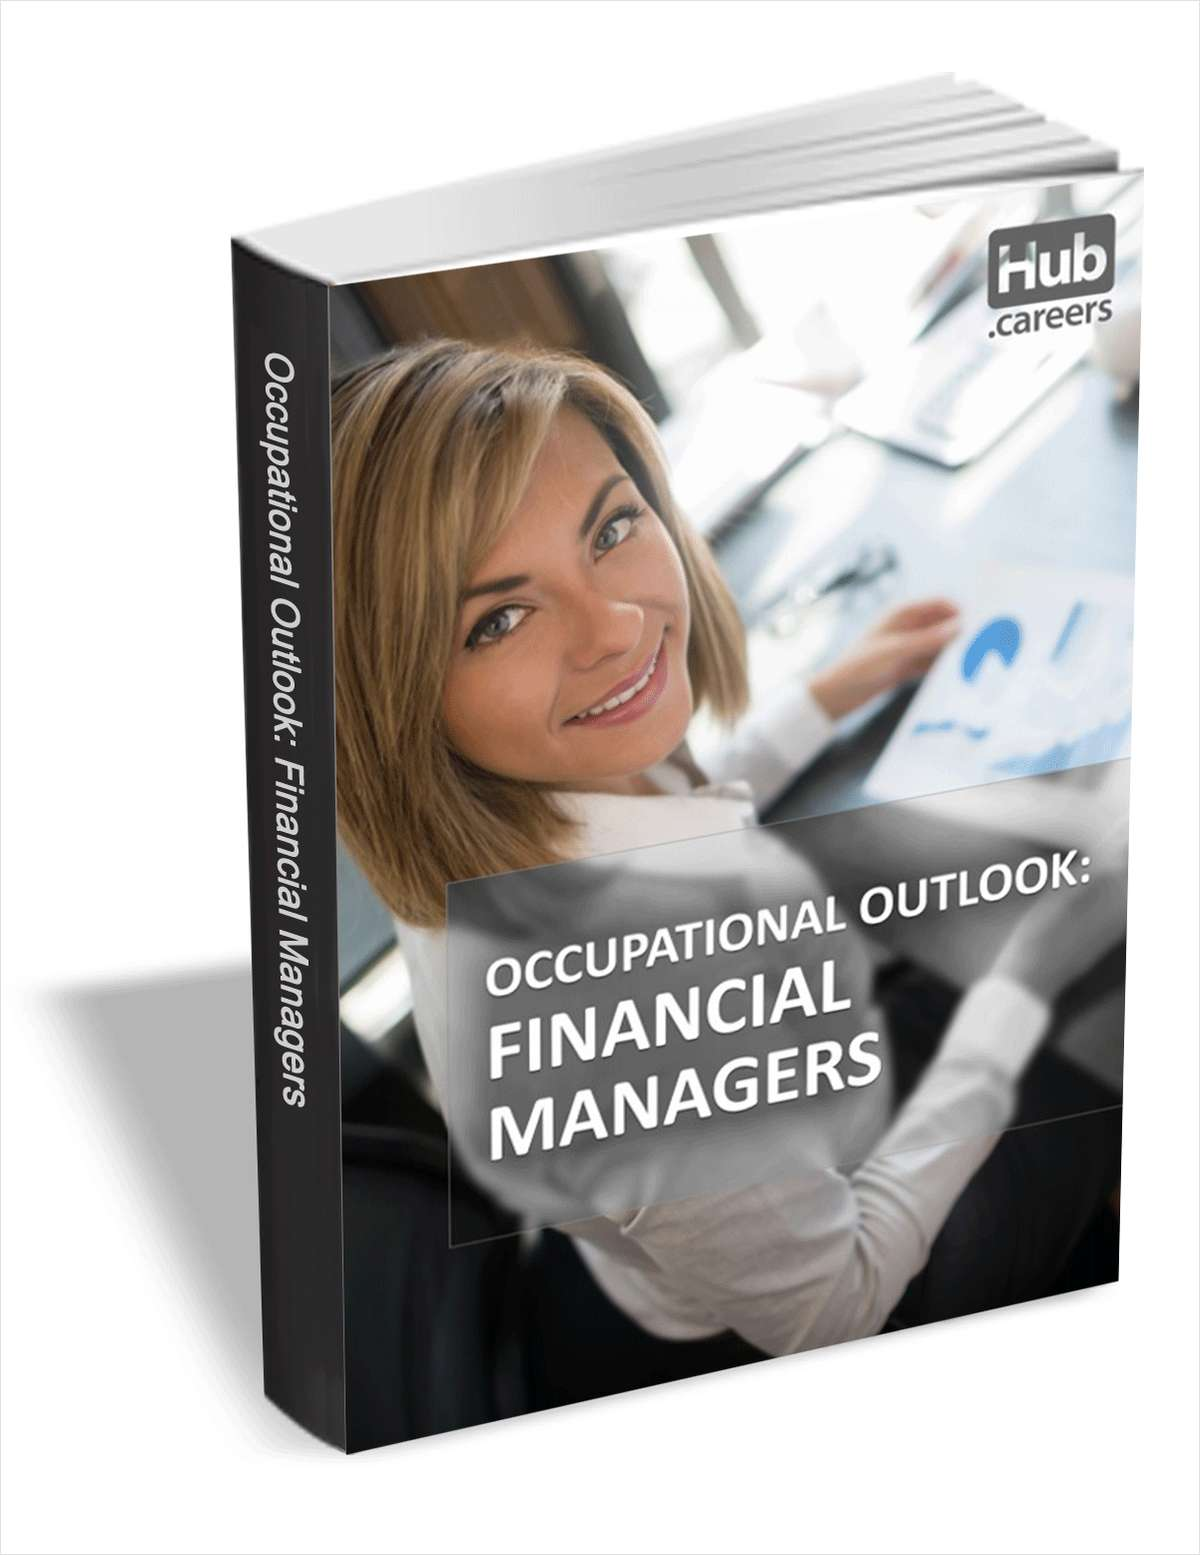 Financial Managers - Occupational Outlook